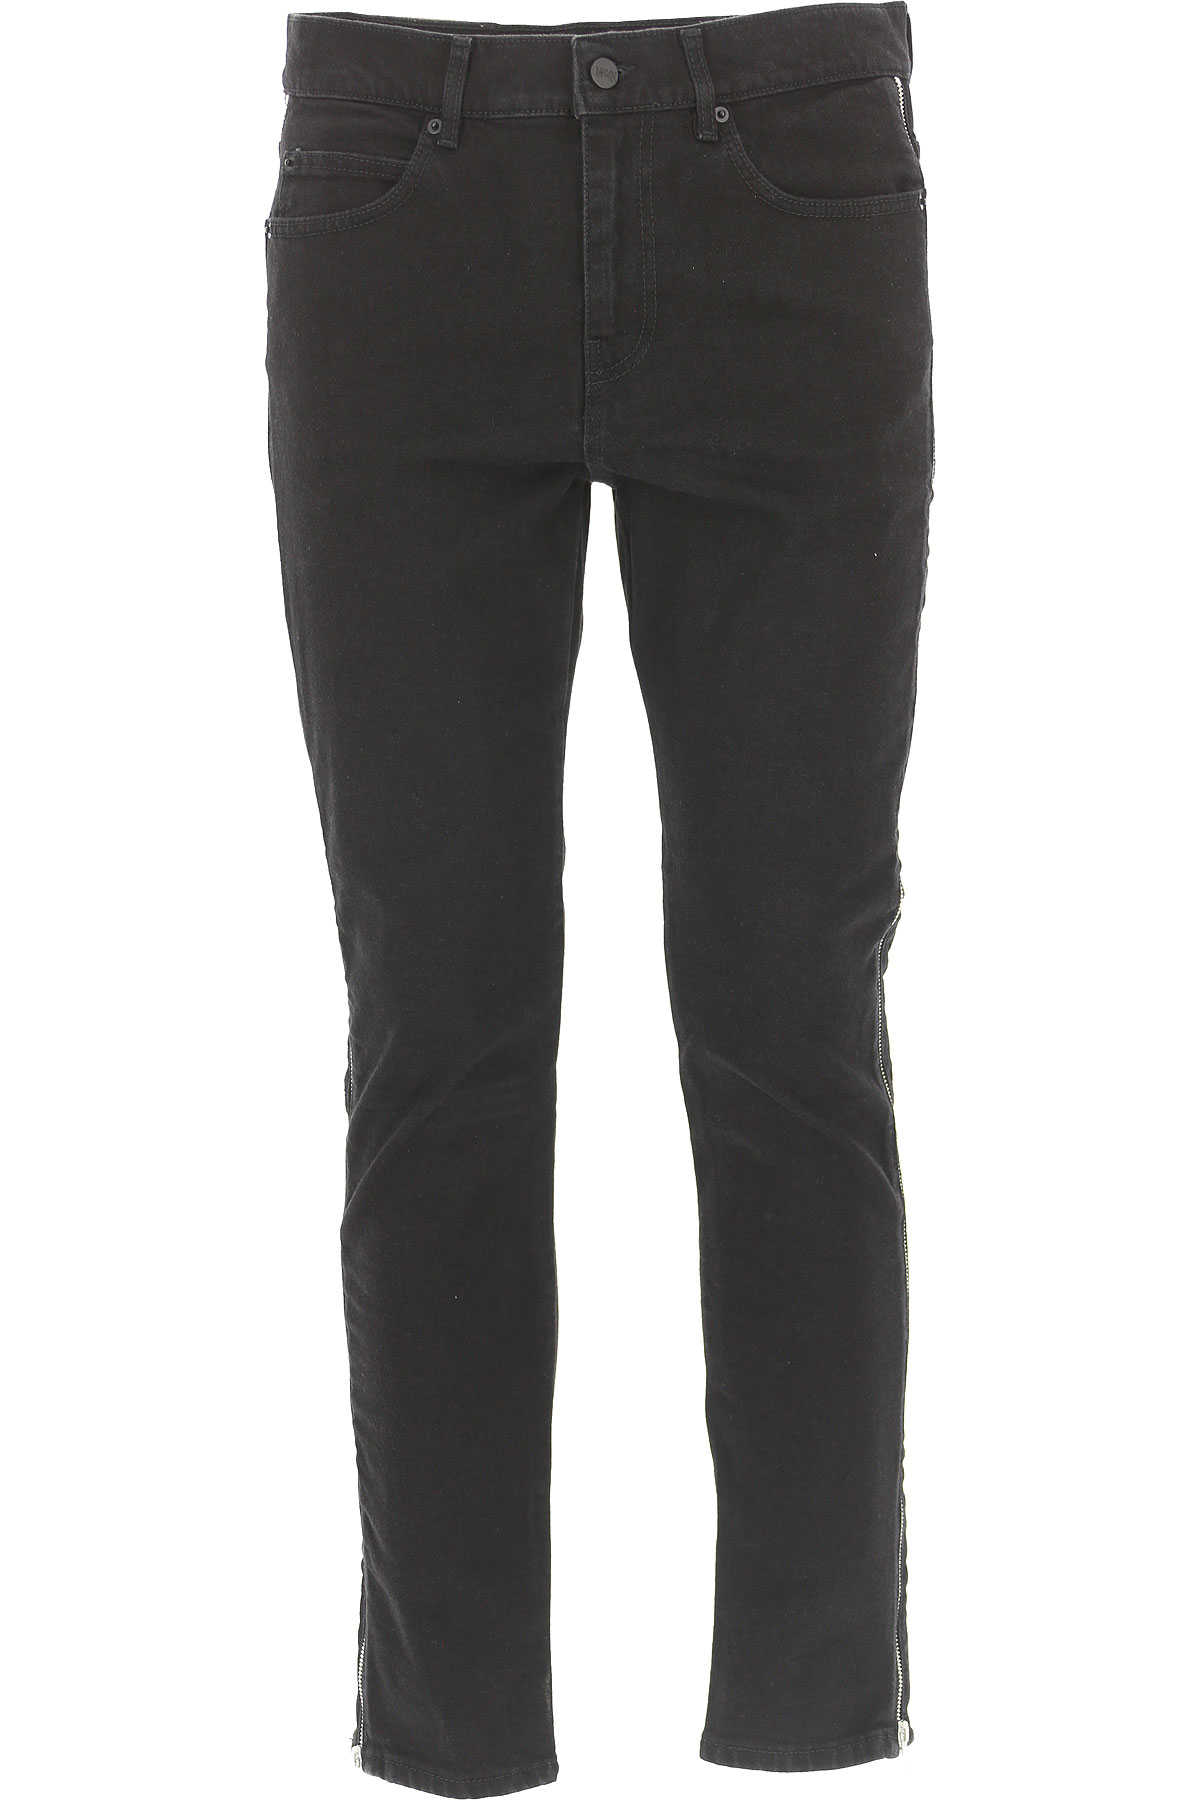 Alexander McQueen McQ Jeans in Outlet Black USA - GOOFASH